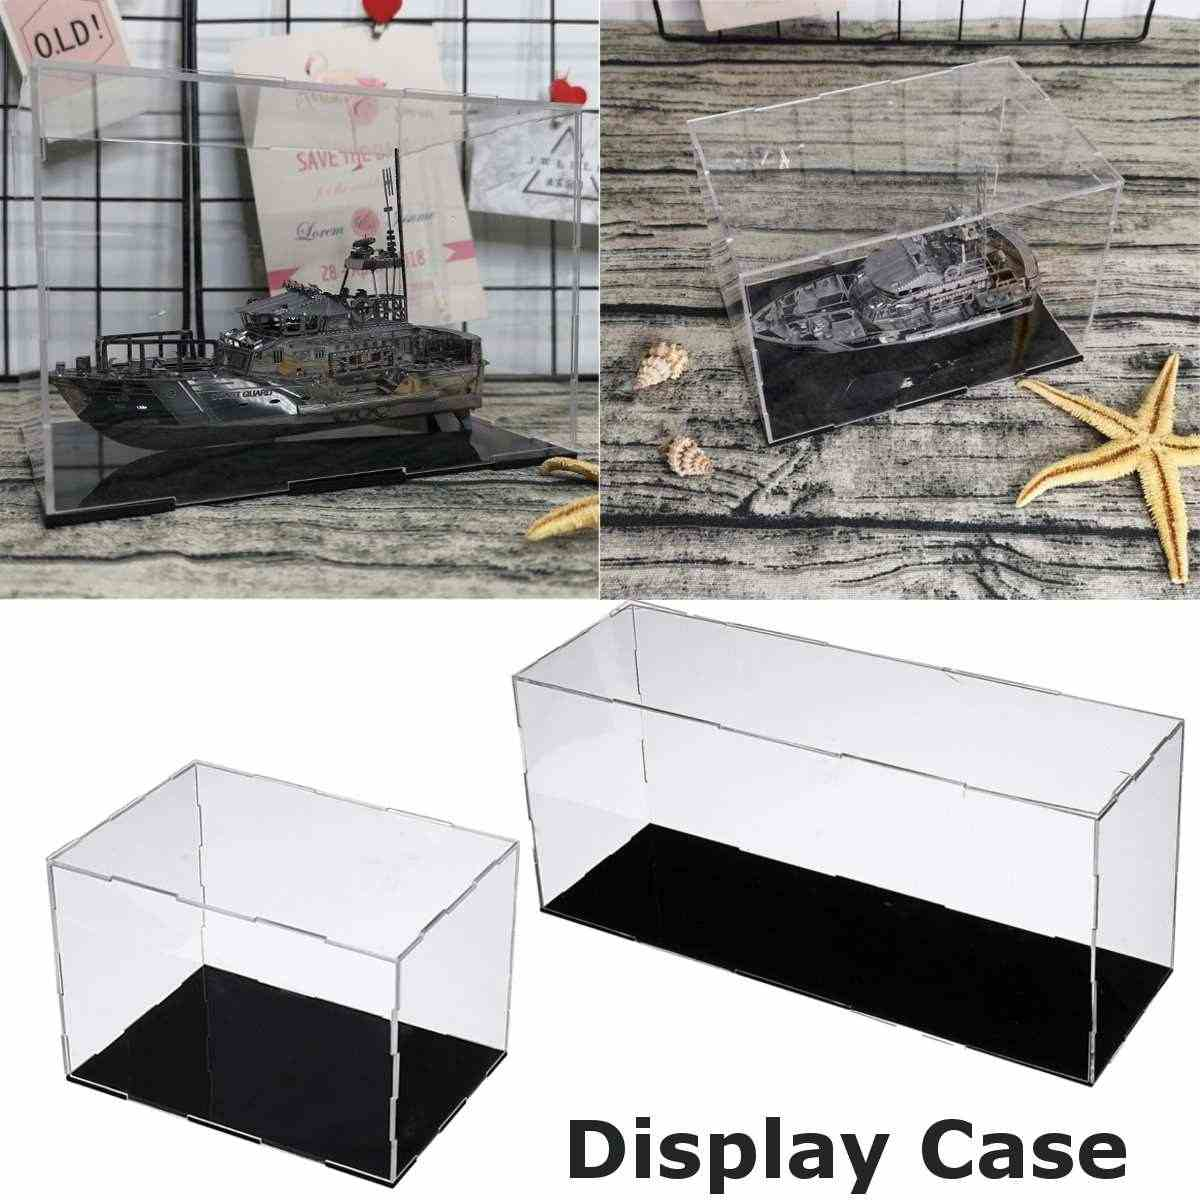 35x10x15/15x10x10cm Acrylic Model Figurine Display Box Show Protection Case Clear Dustproof Crylic Display Big Size Perspex